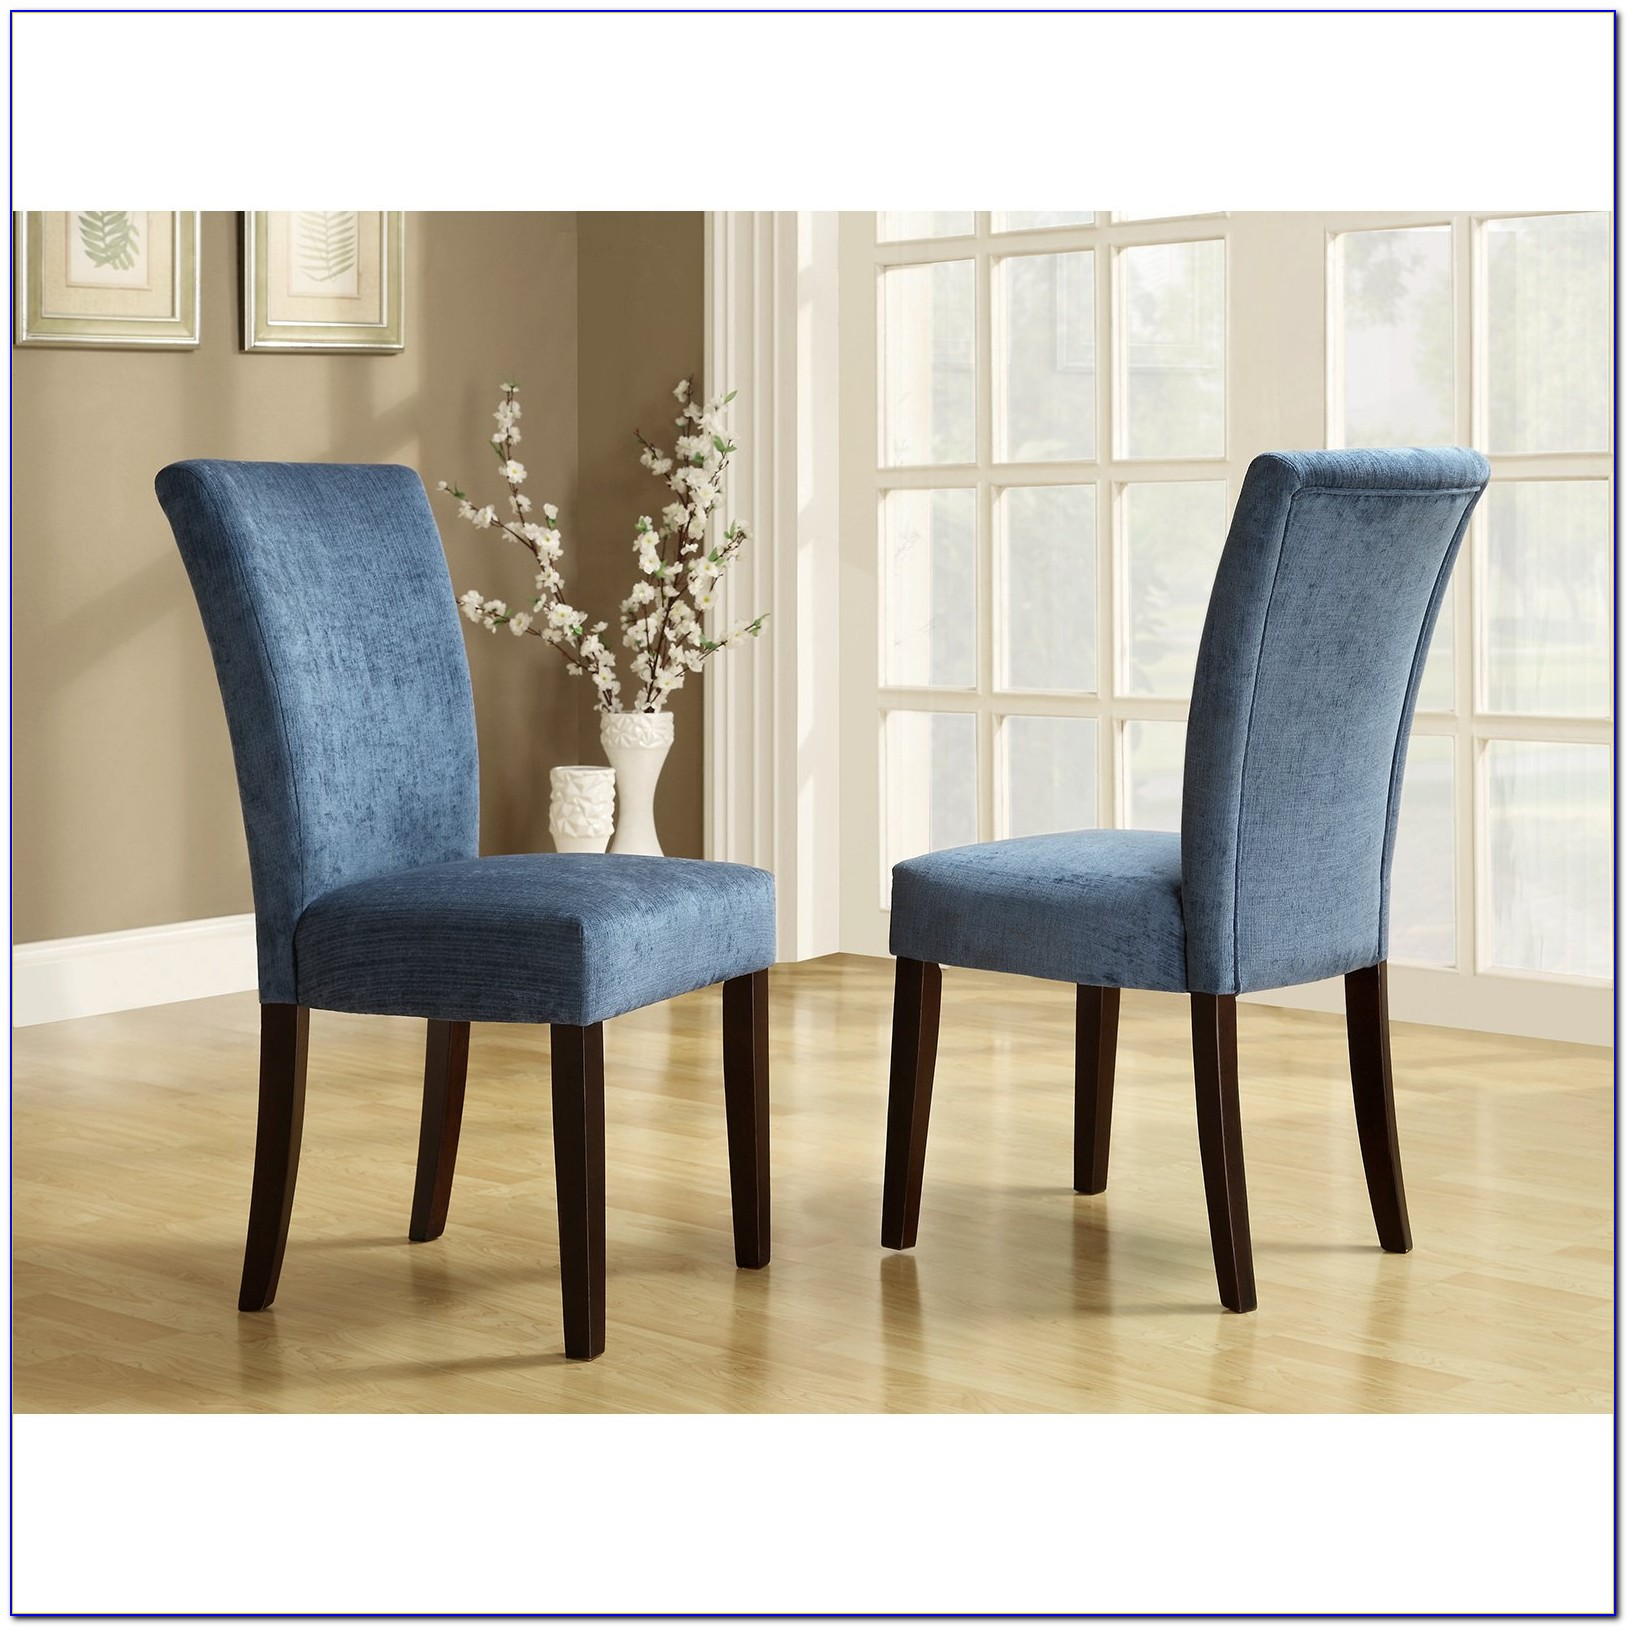 Royal Blue & White Dining Chairs